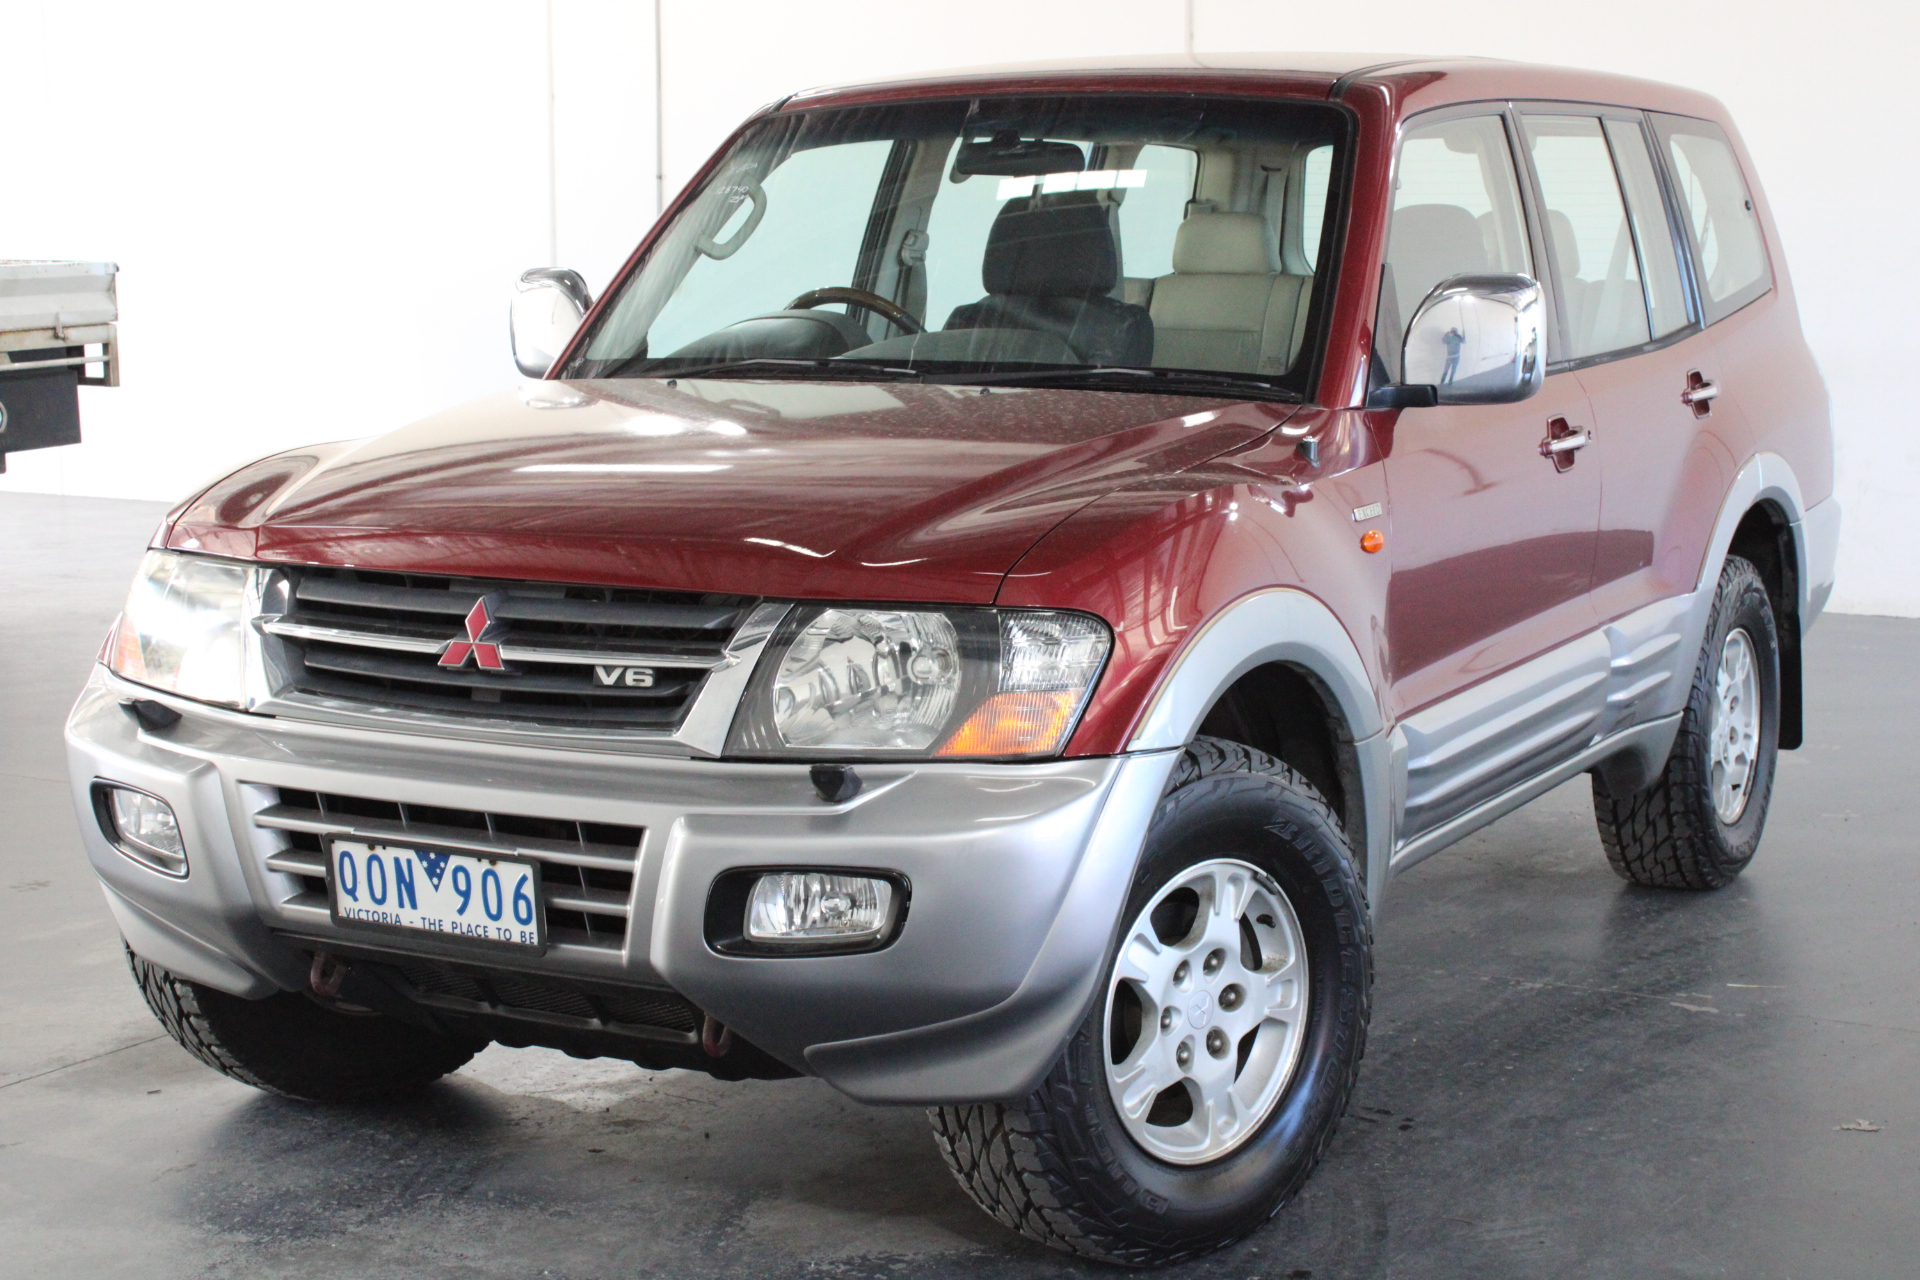 2000 Mitsubishi Pajero GLS NM Auto 7 Seats Wagon RWC issued 15/09/2020